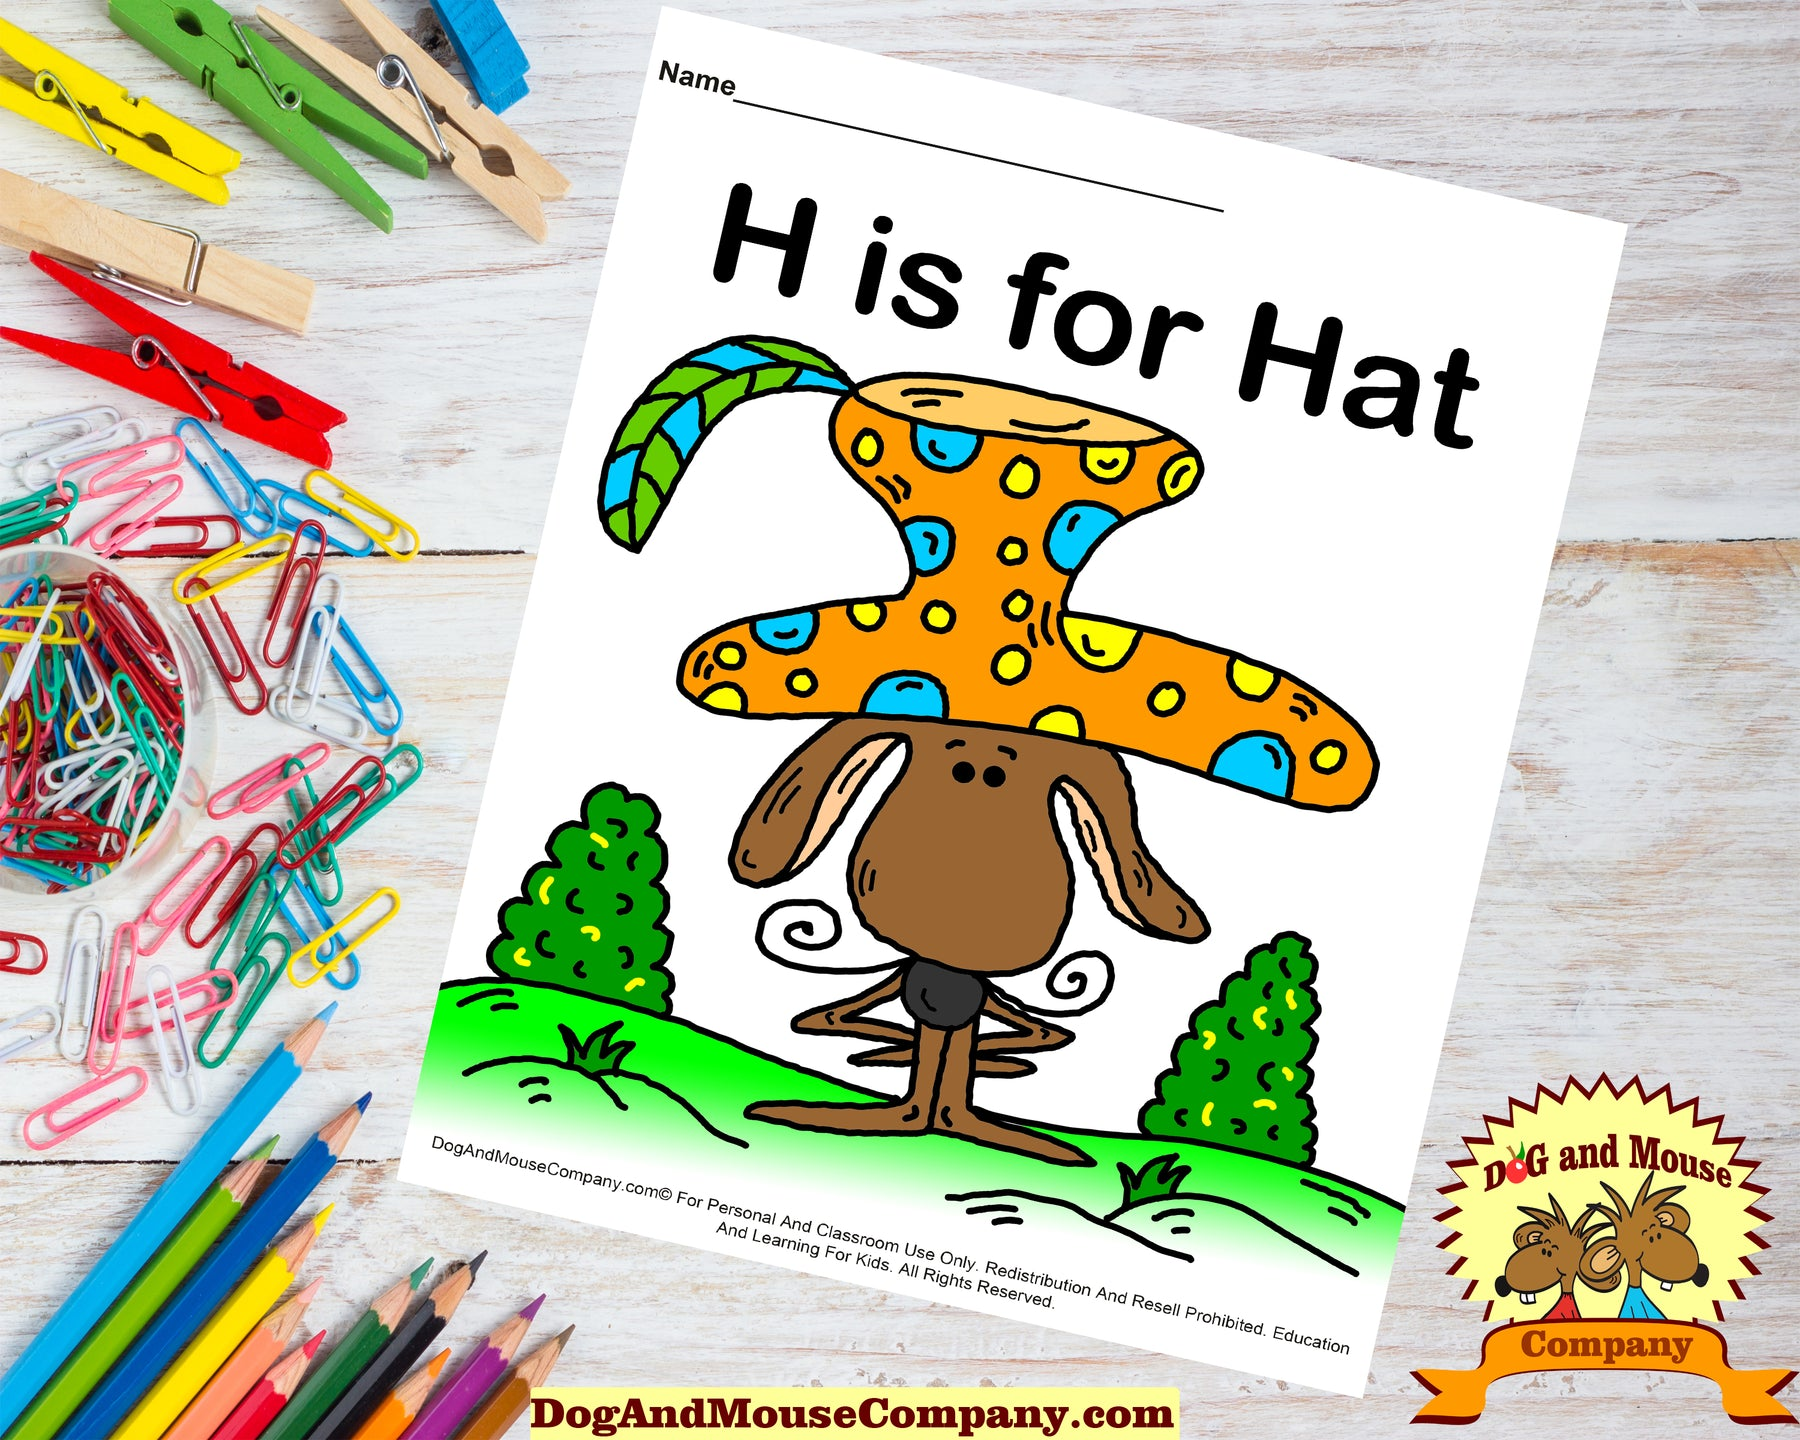 H is for Hat colored printable worksheet by dogandmousecompany.com